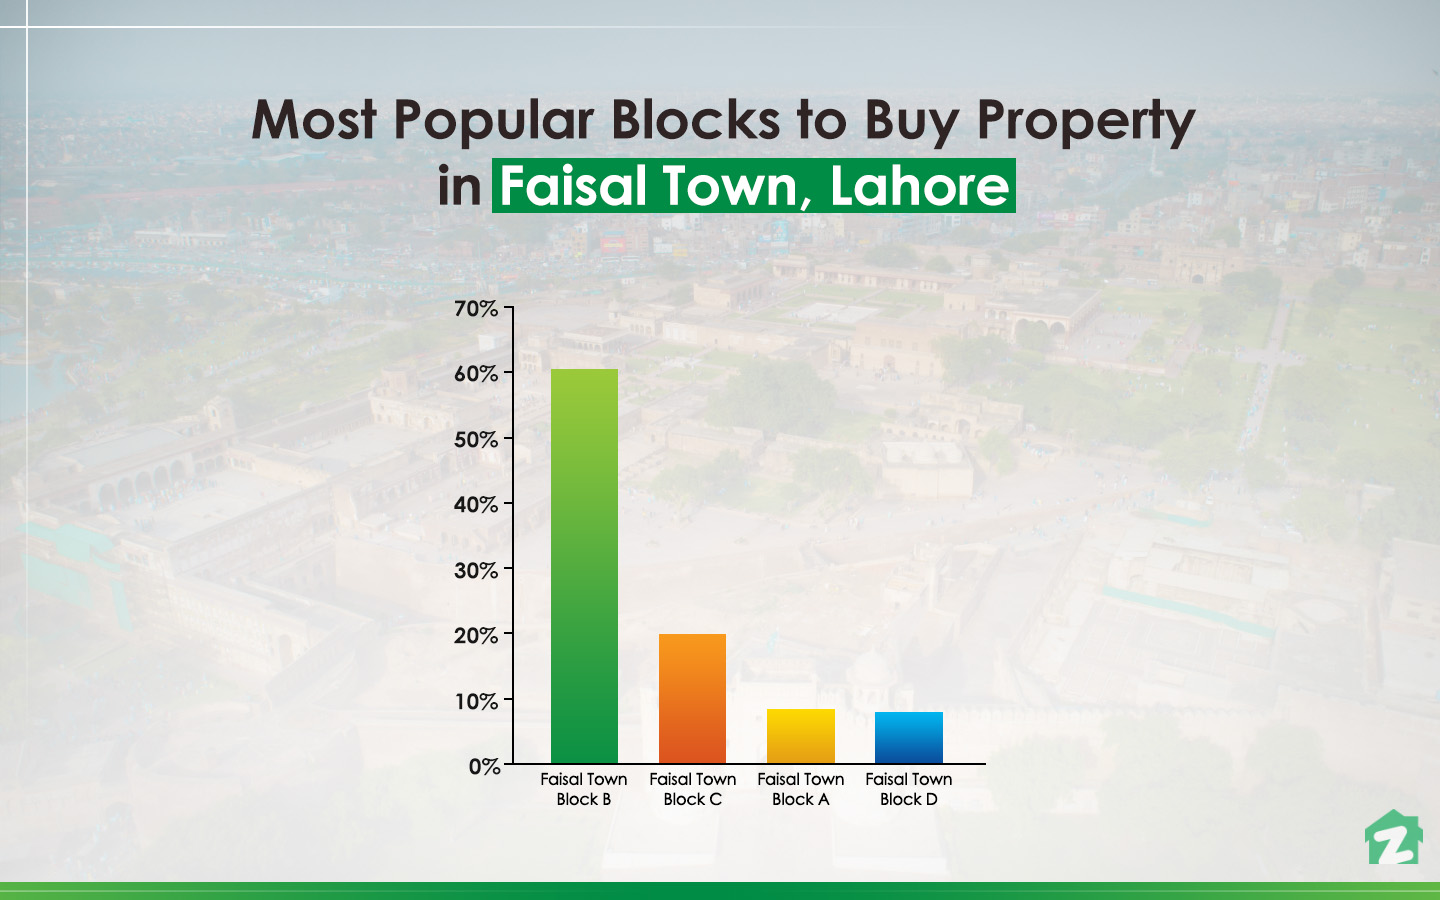 Most Popular Blocks to Buy Property in Faisal Town, Lahore